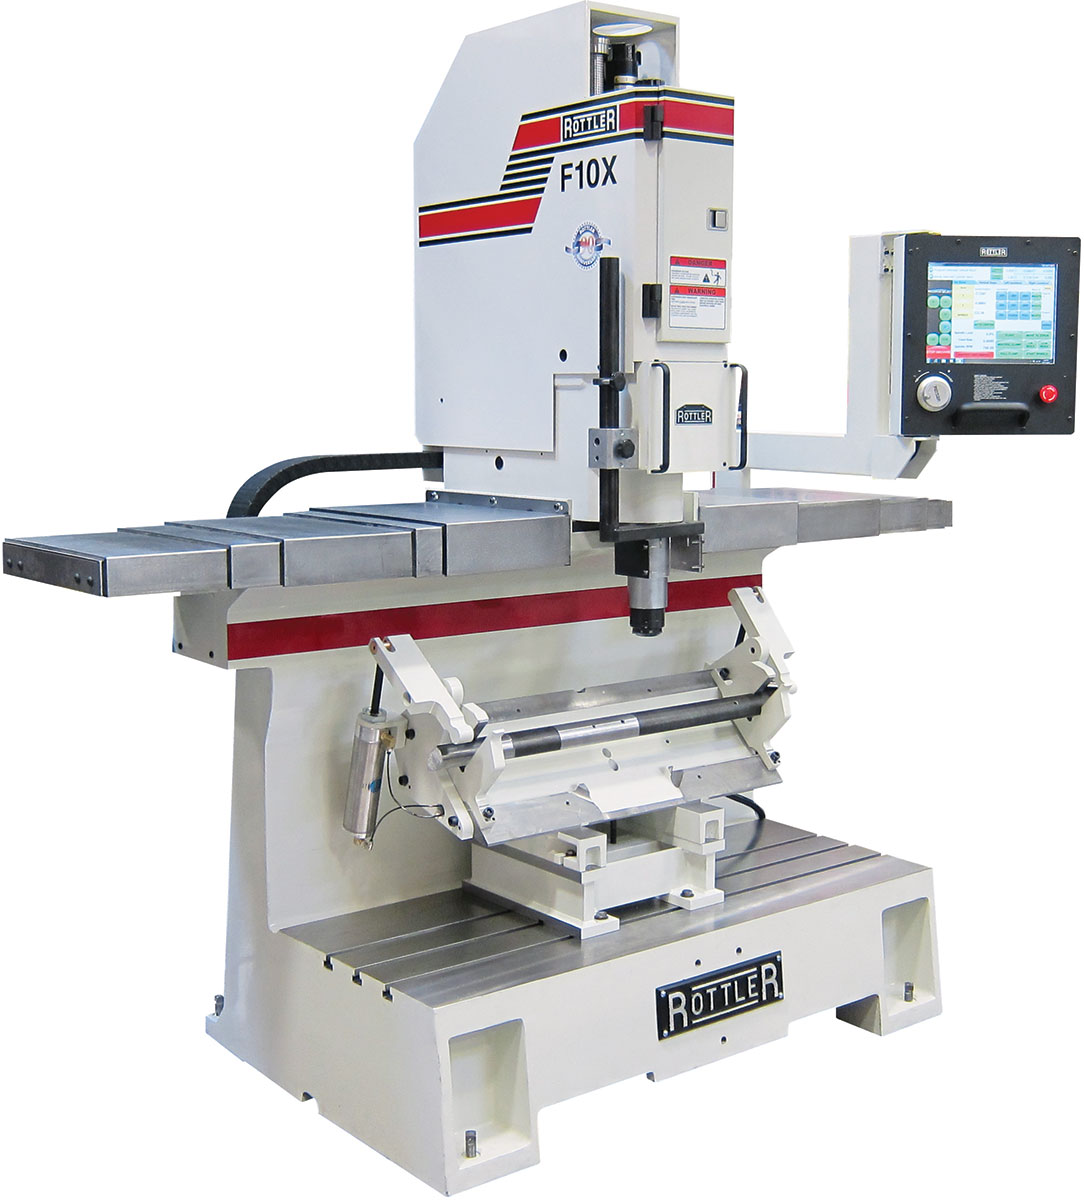 Rottler F10X Rottler CNC Automatic Programmable Hole-to-Hole